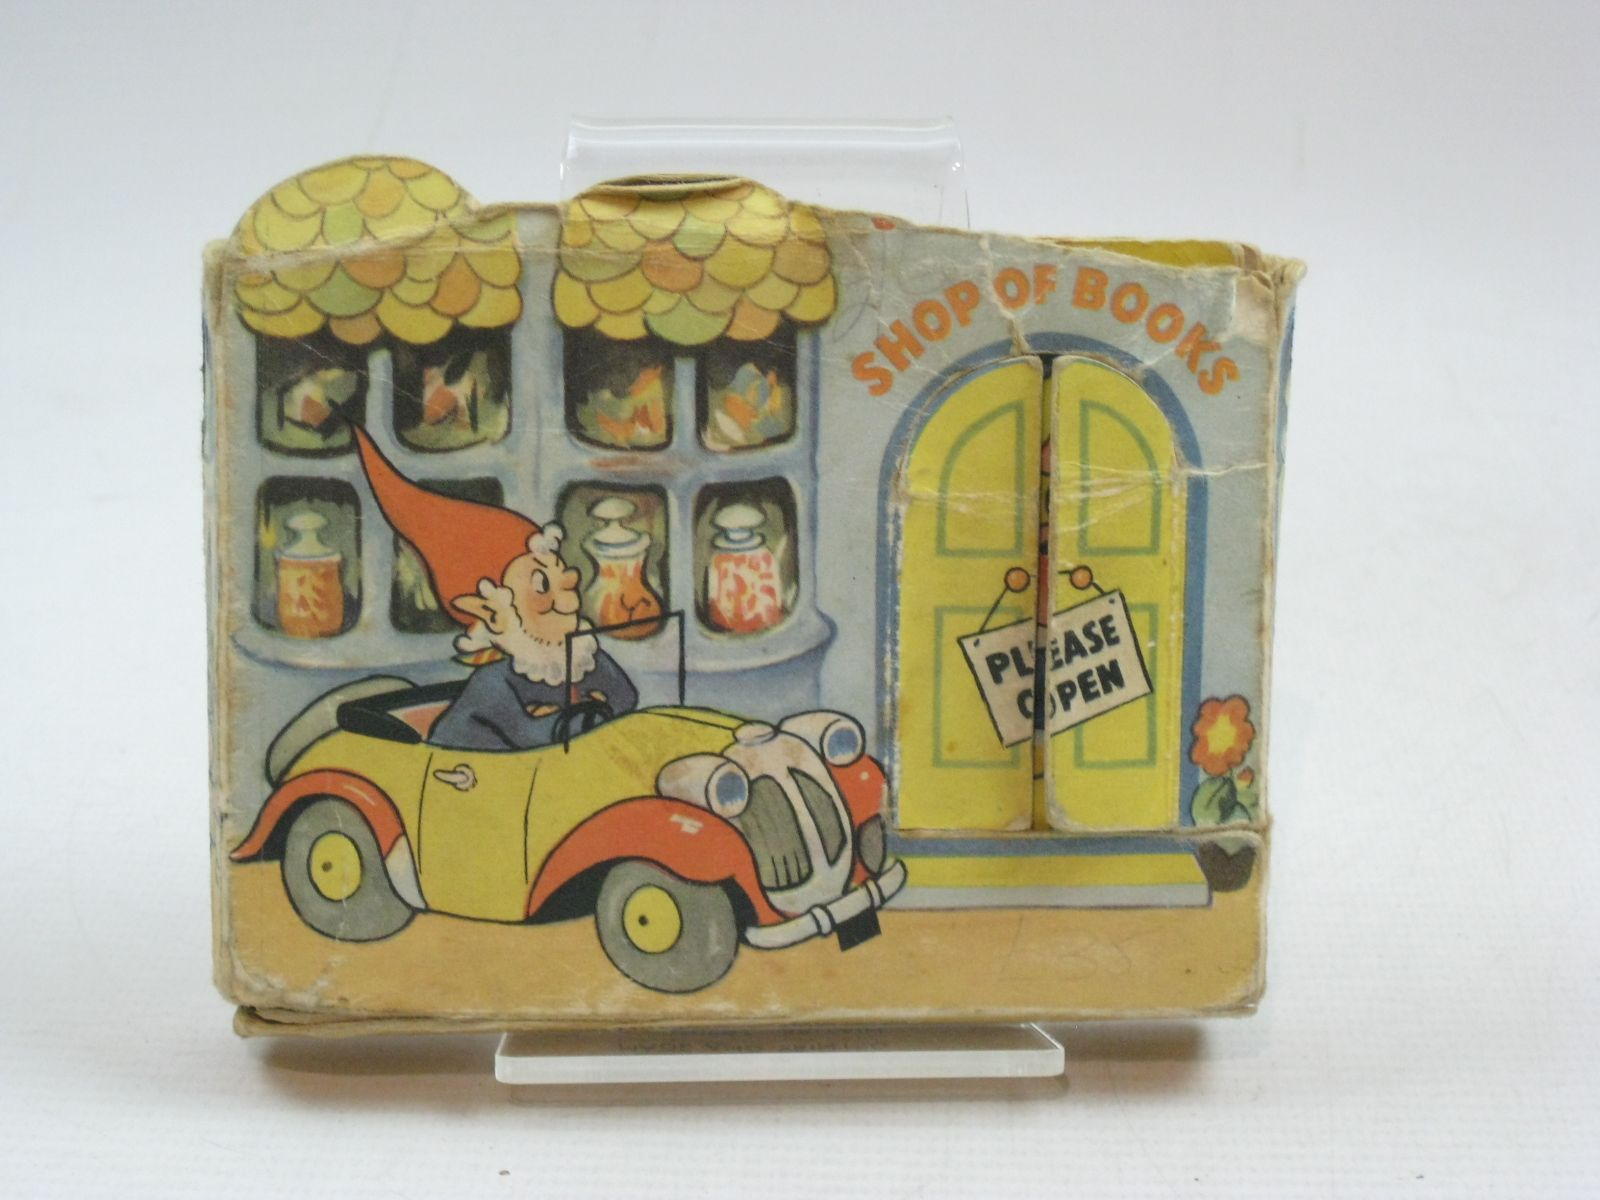 Photo of NODDY'S SHOP OF BOOKS written by Blyton, Enid published by Sampson Low, Marston & Co. Ltd. (STOCK CODE: 1505655)  for sale by Stella & Rose's Books